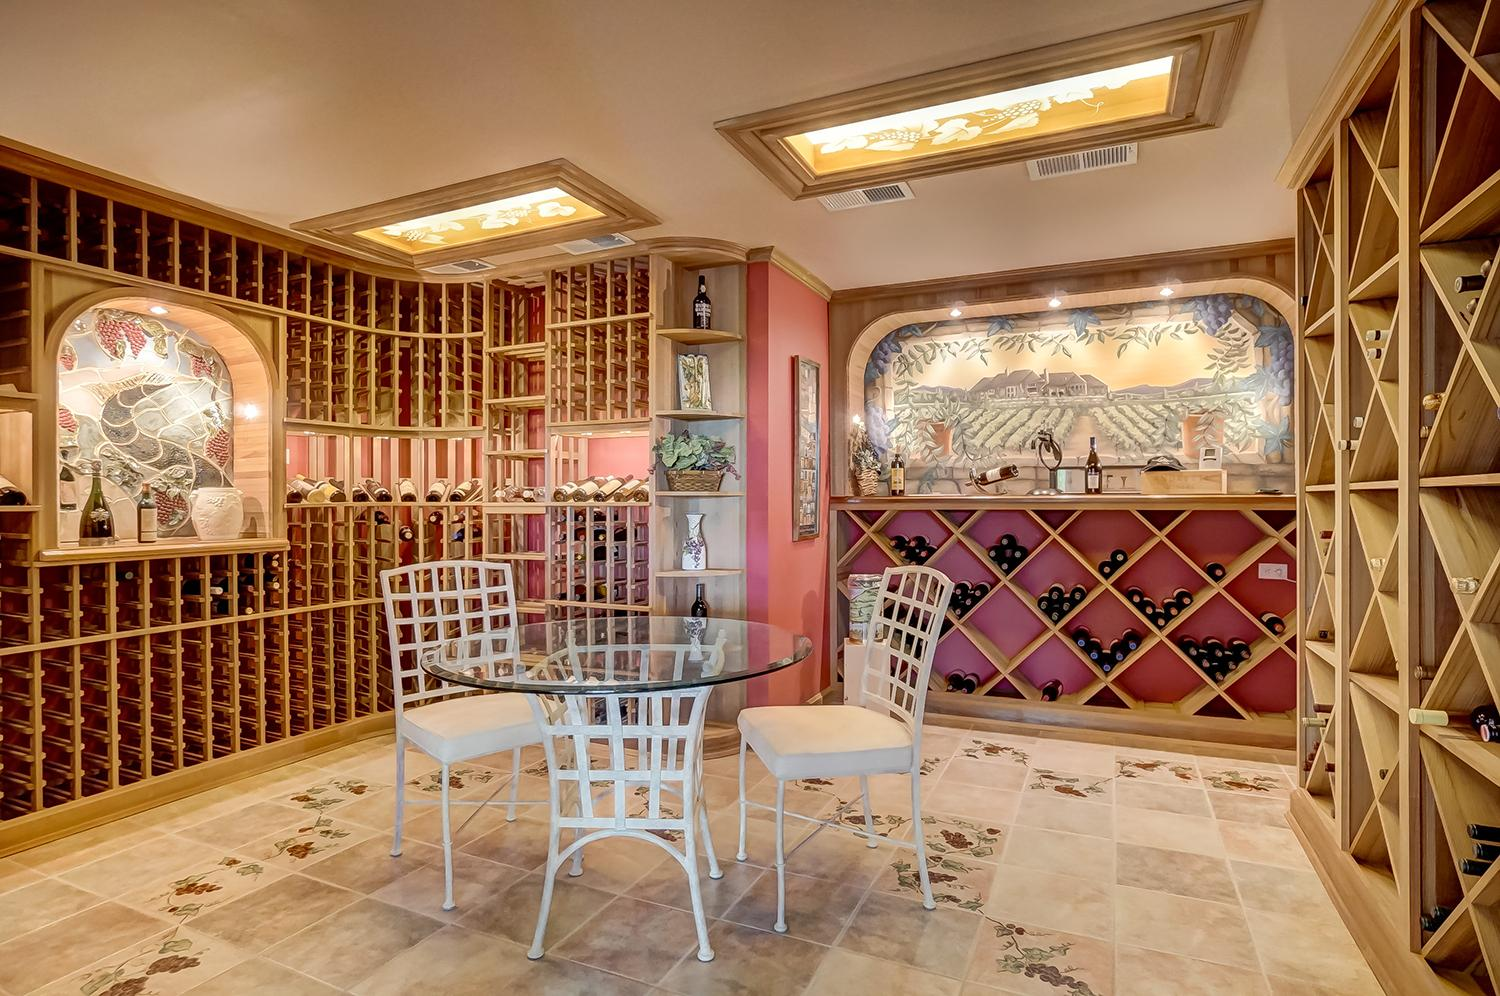 2,000 bottle capacity climate-controlled wine cellar with a tasting room that features handprinted wine-themed murals / Image: Wow Video Tours // Published: 6.8.18